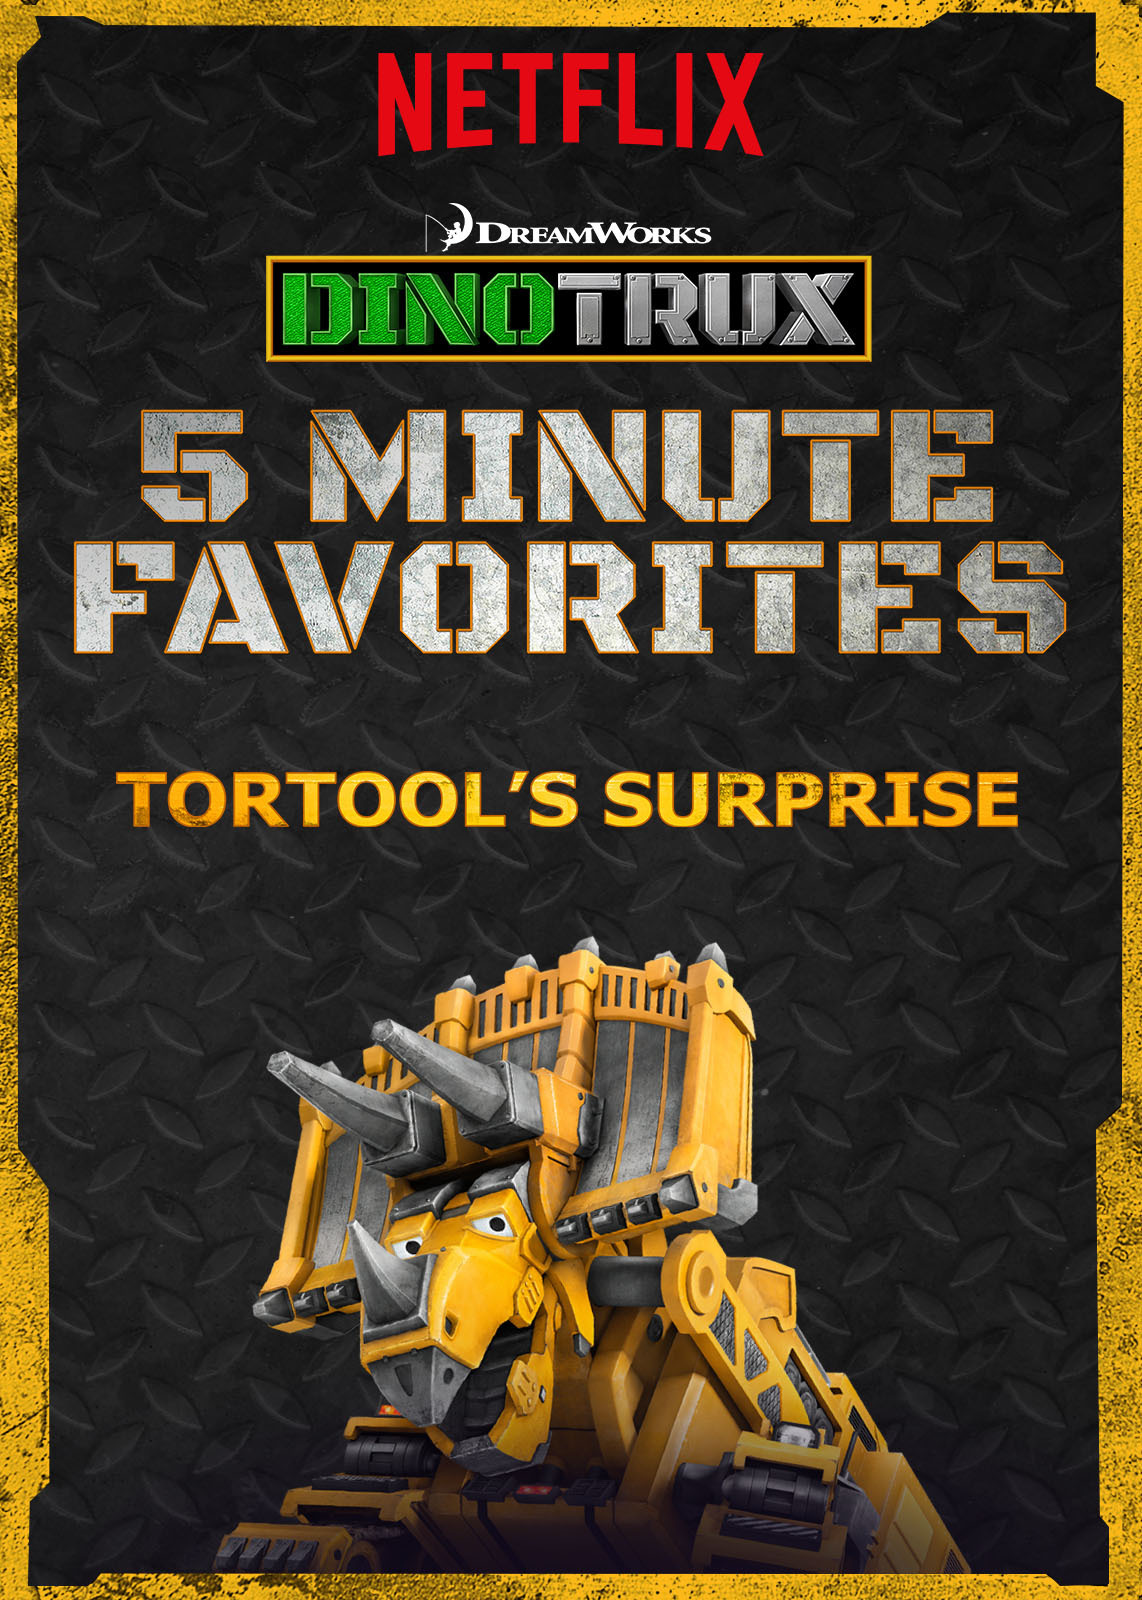 DinoTrux Tortool's Surprise